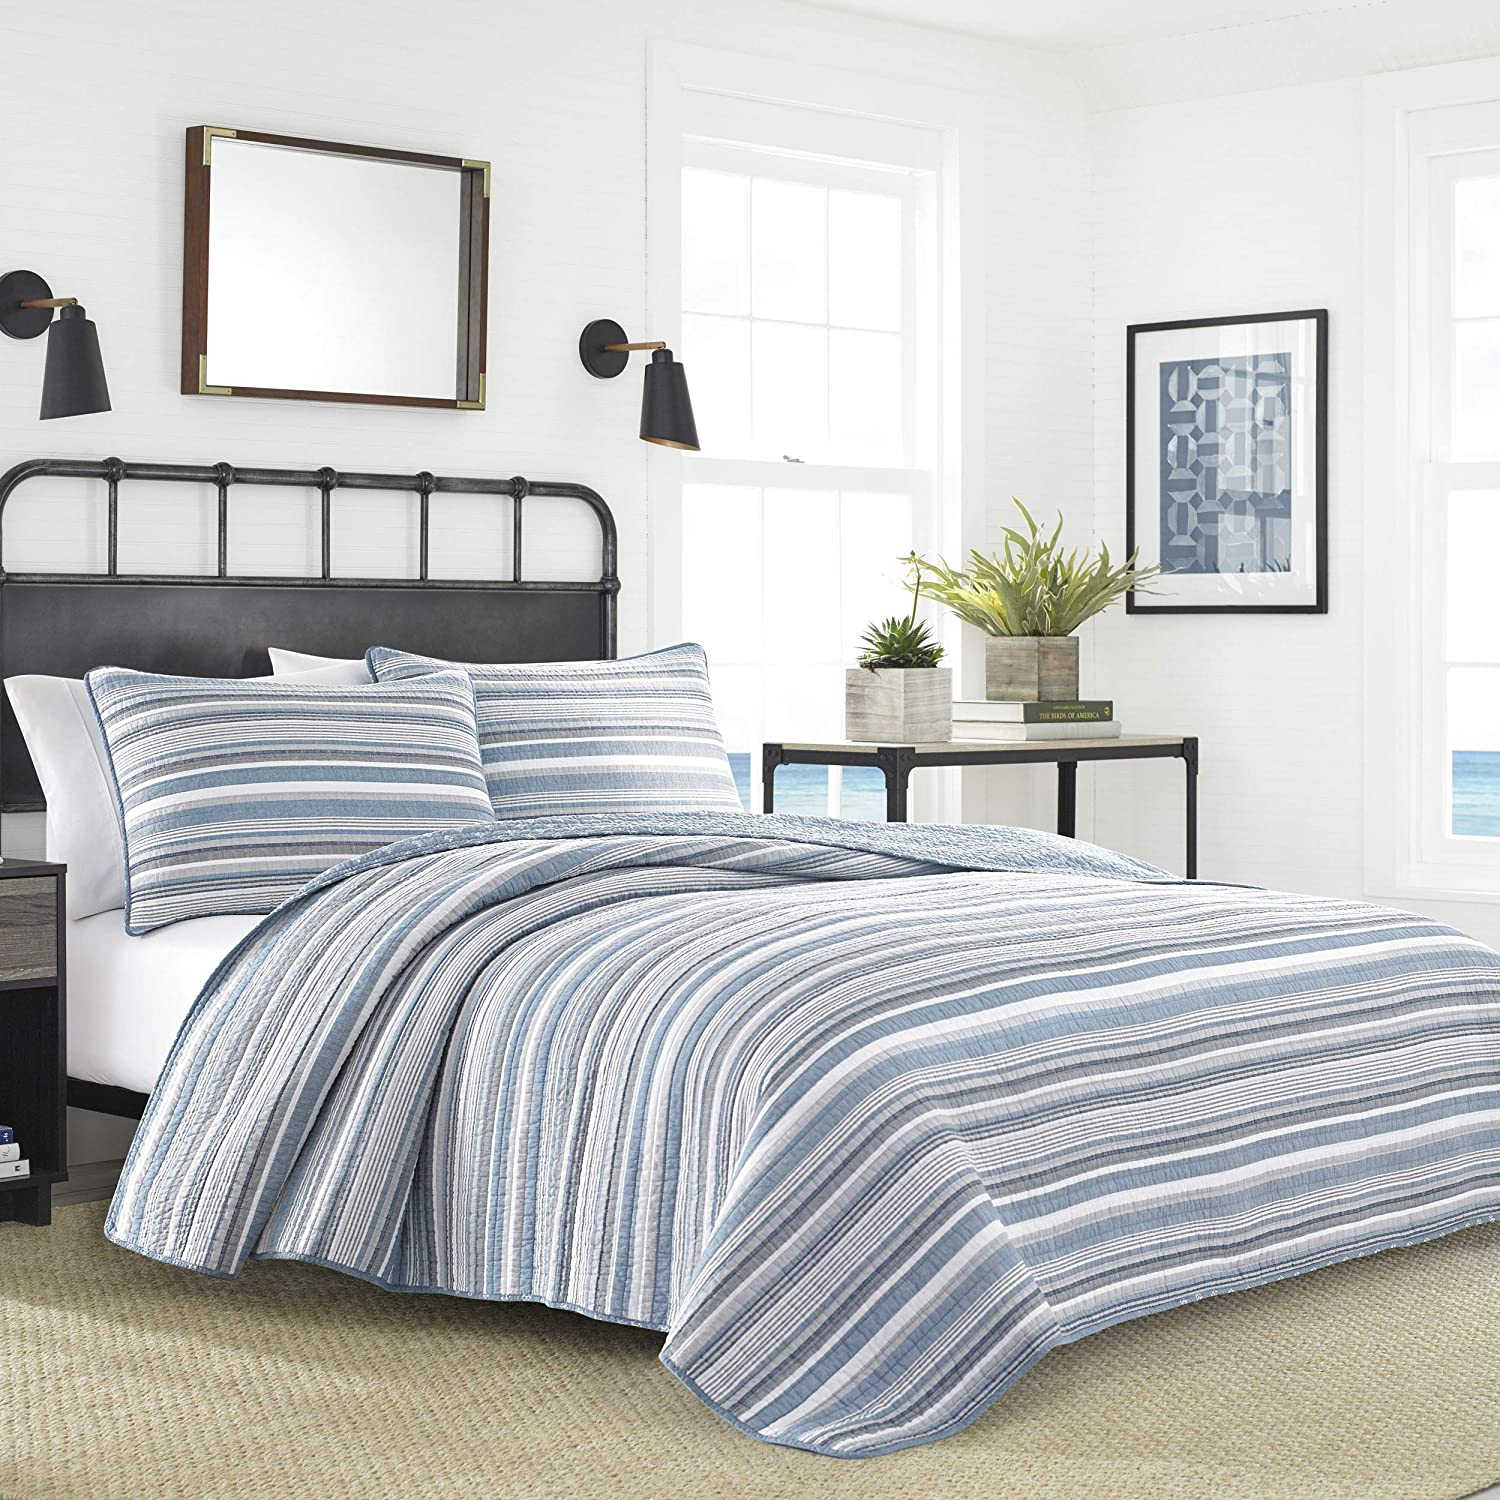 Nautica Jettison Quilt Set, Full/Queen, Grey